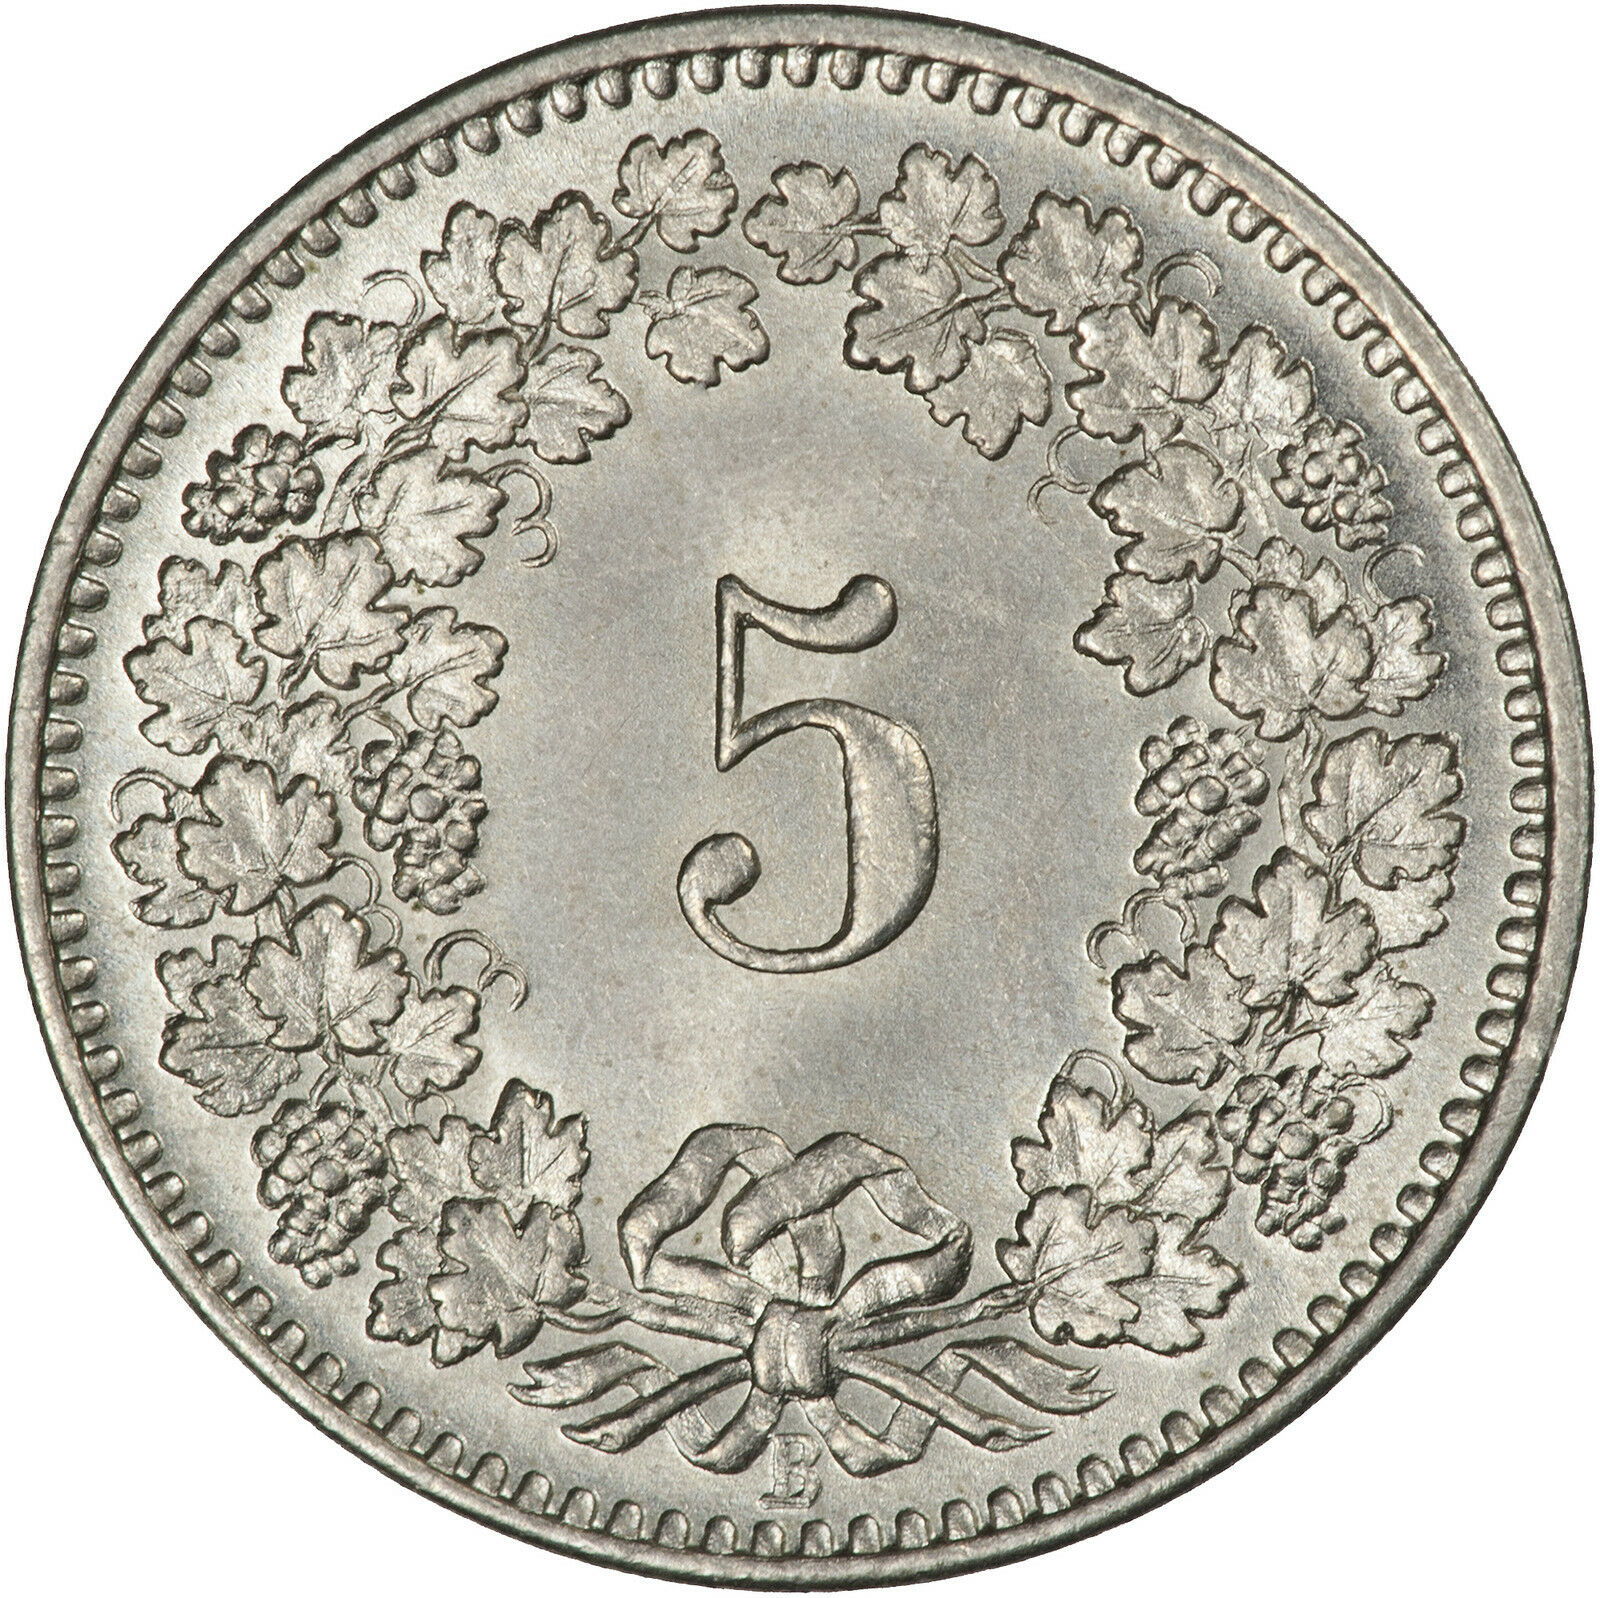 Five Centimes (Rappen) 1893: Photo Coin, Switzerland, 5 Rappen 1893